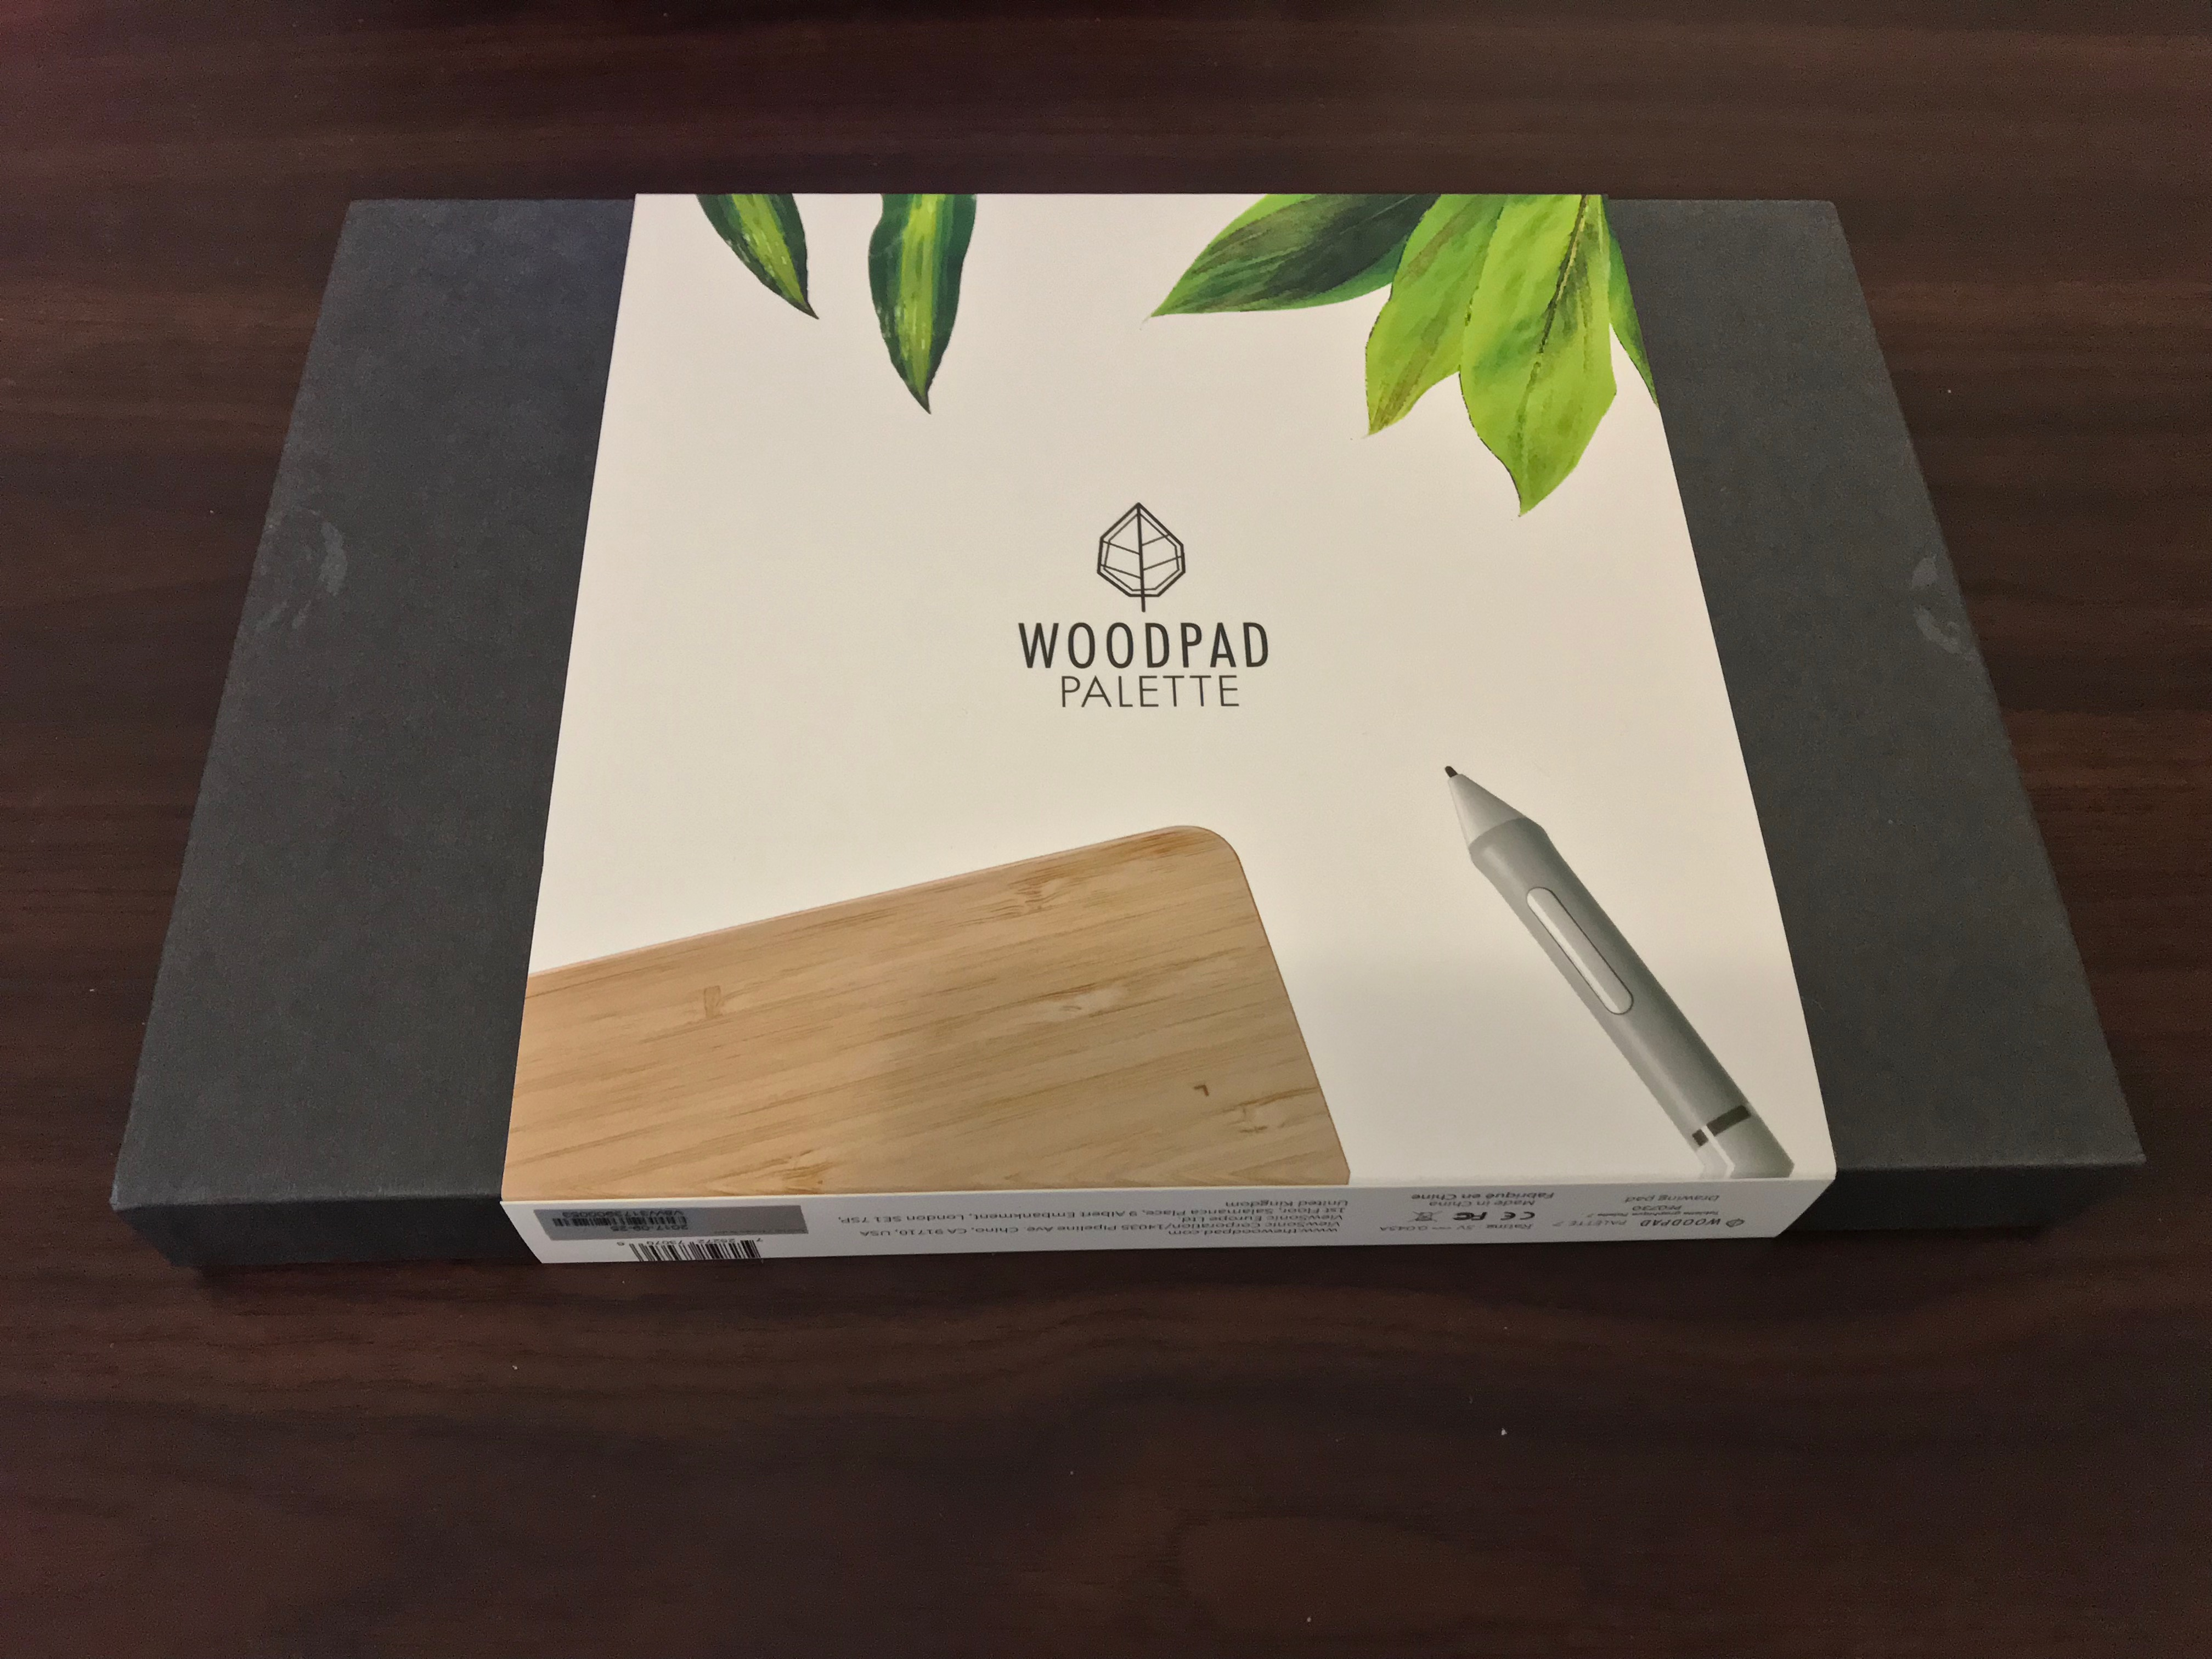 woodpad-pf0730-package